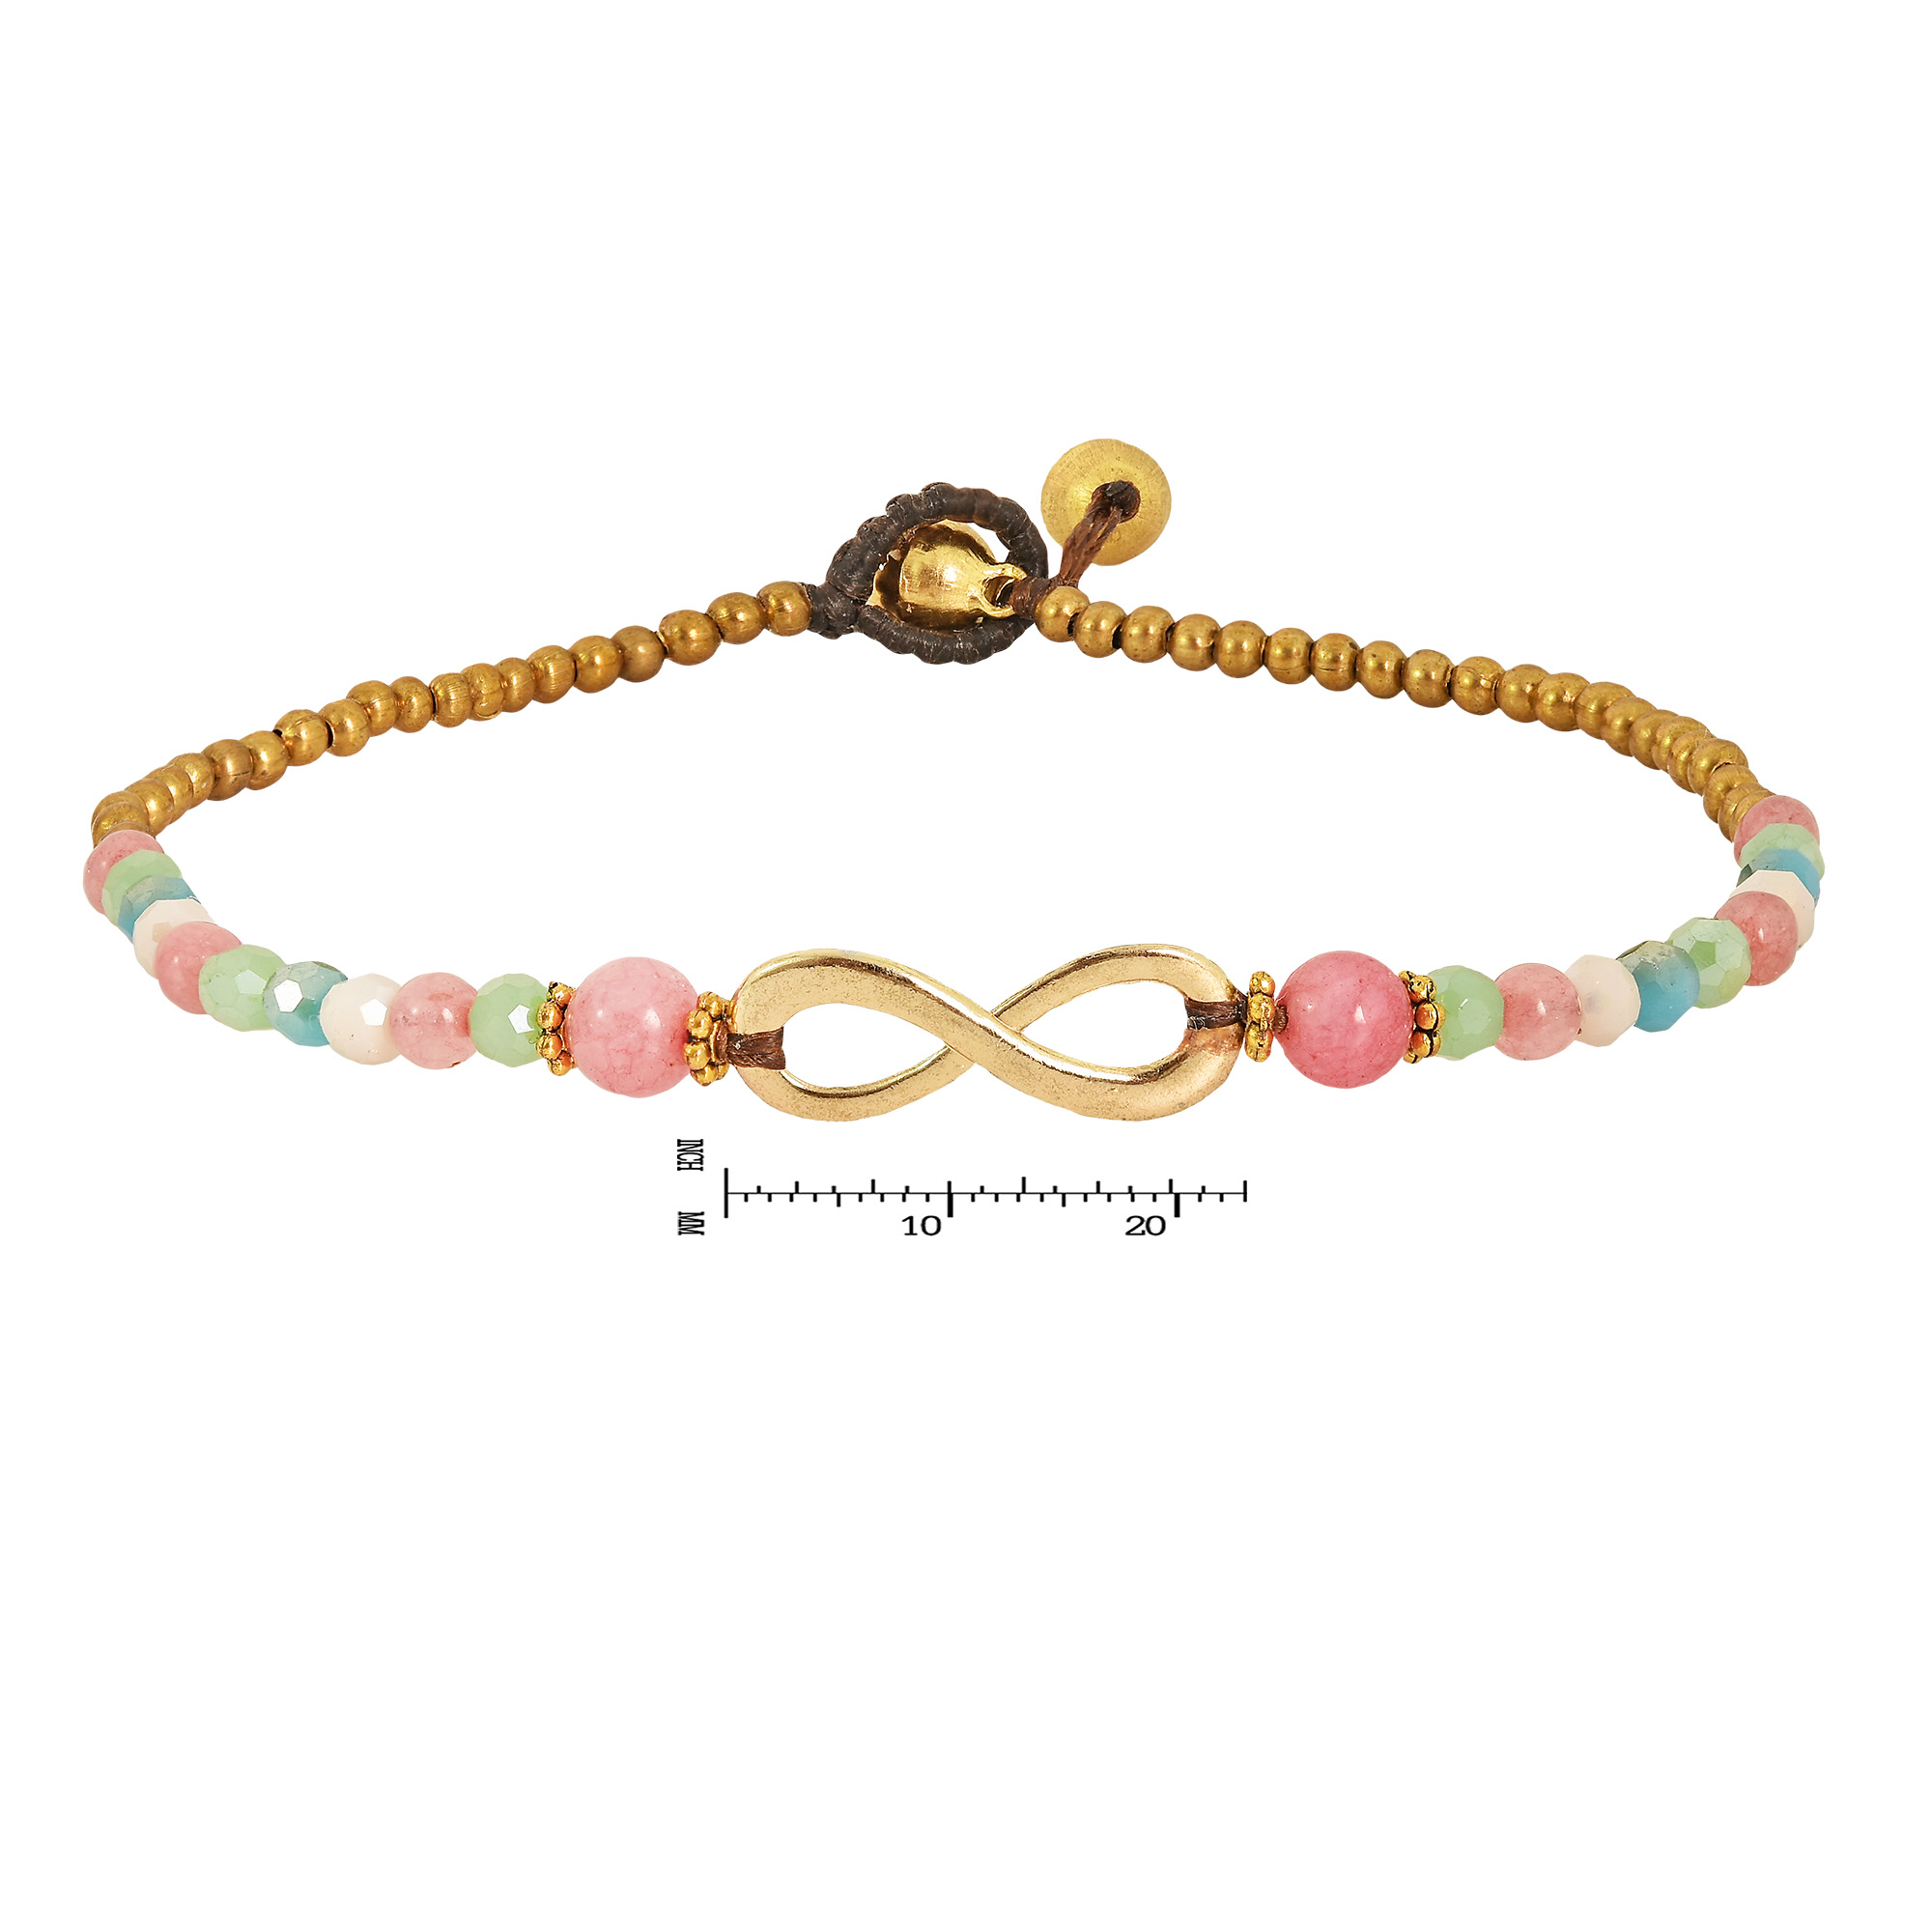 Meaning of infinity symbol images symbol and sign ideas beautiful infinity symbol pastel stone brass beads handmade anklet the beautiful meaning of the infinity symbol biocorpaavc